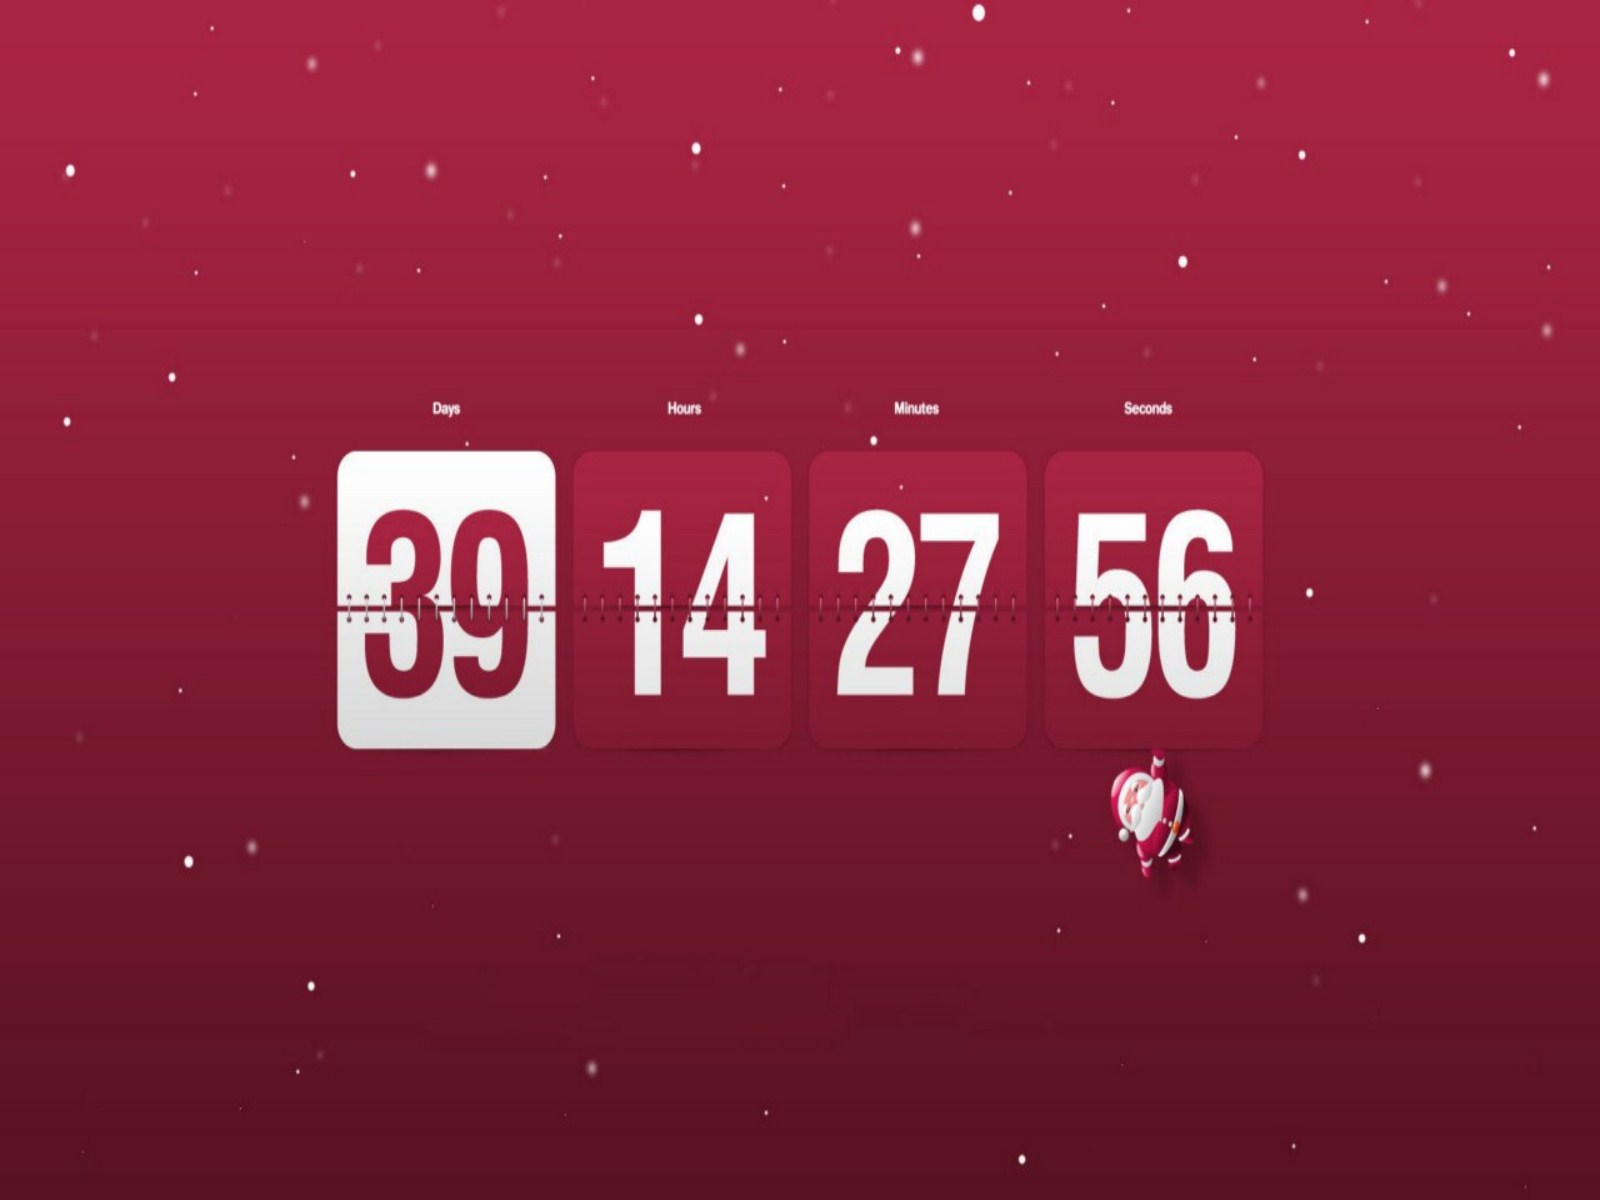 netwallpaperwallpaper christmas countdown wallpapershtm 1600x1200